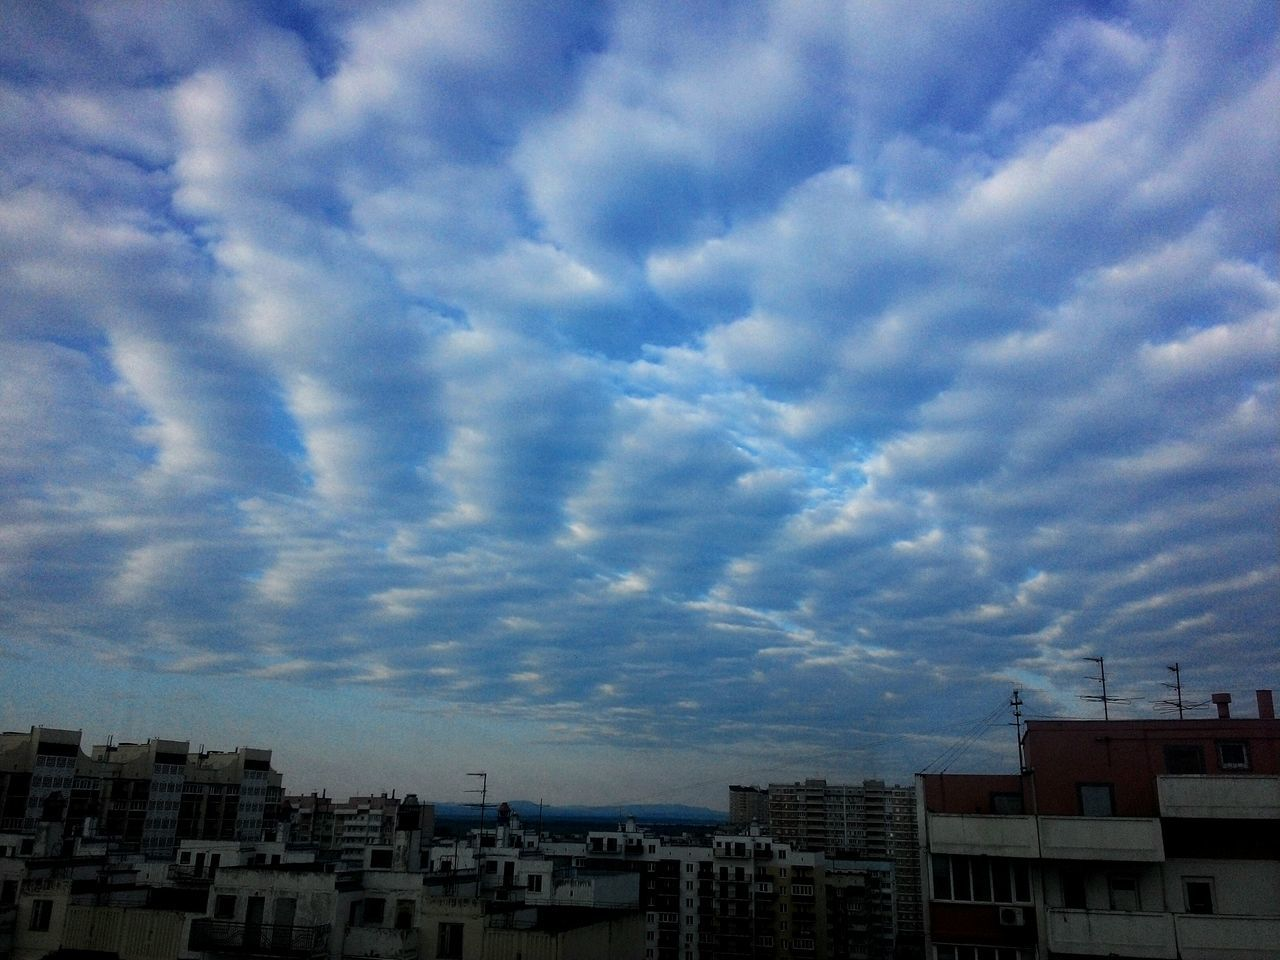 sky, architecture, building exterior, no people, cloud - sky, city, cityscape, built structure, residential, outdoors, nature, day